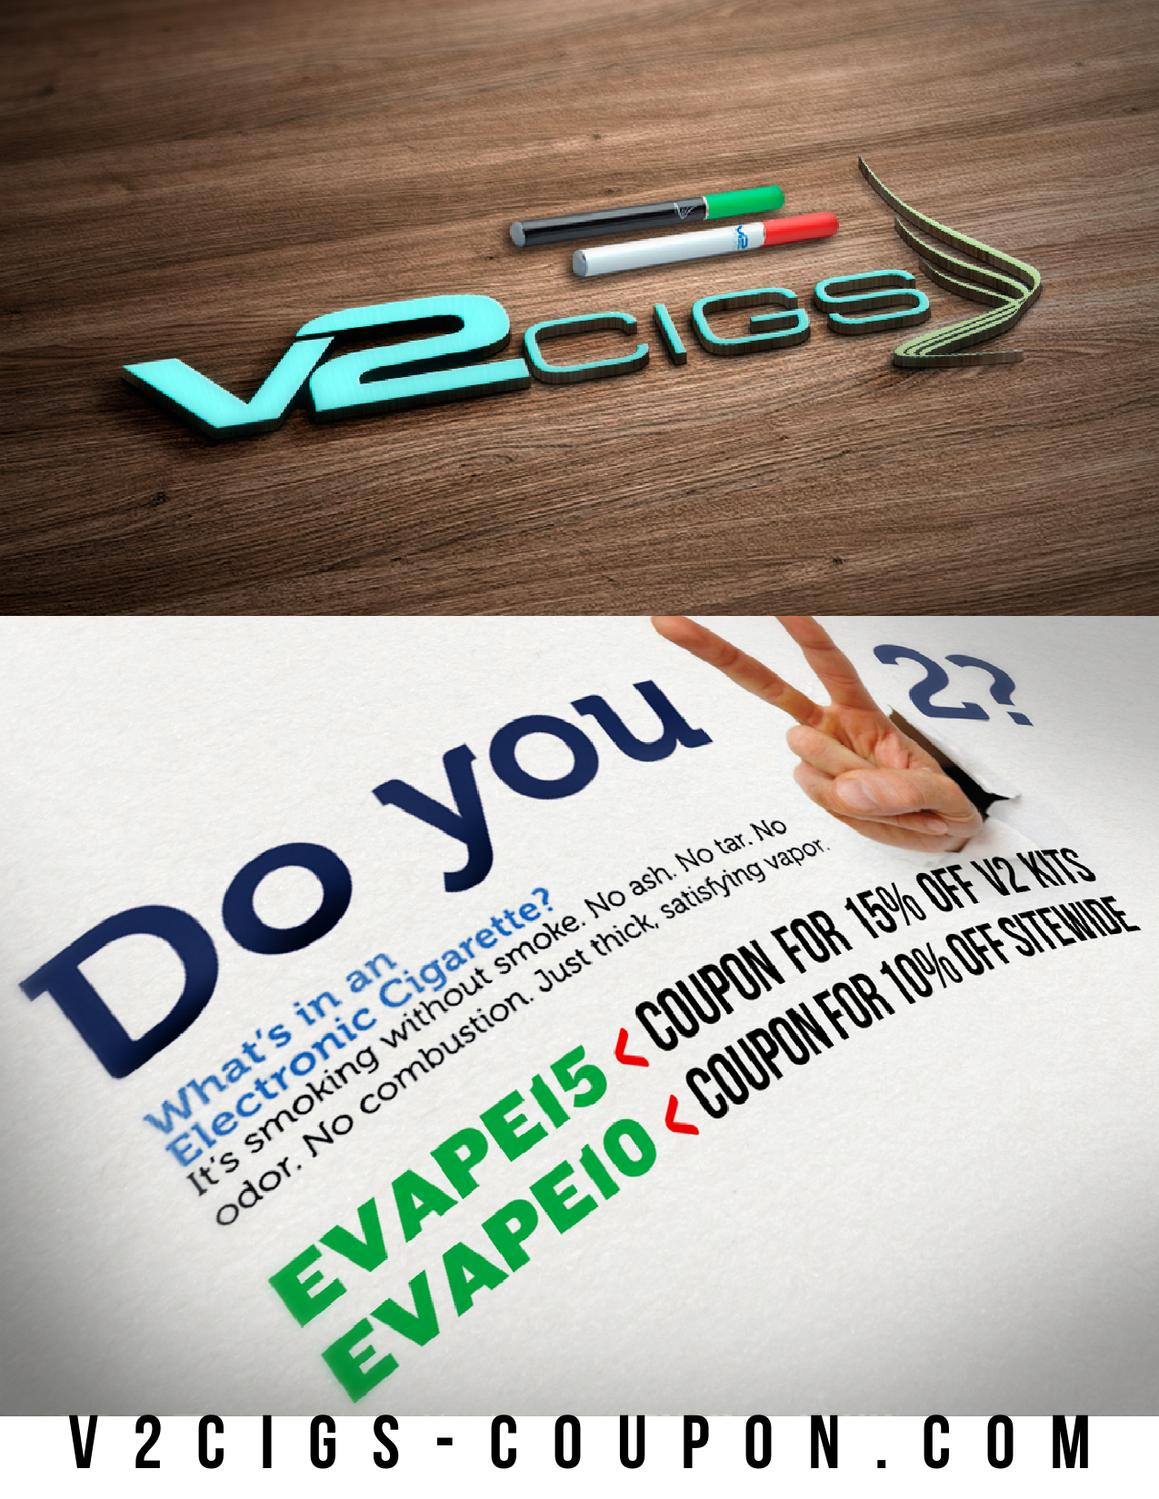 V2 e cigarette coupon code